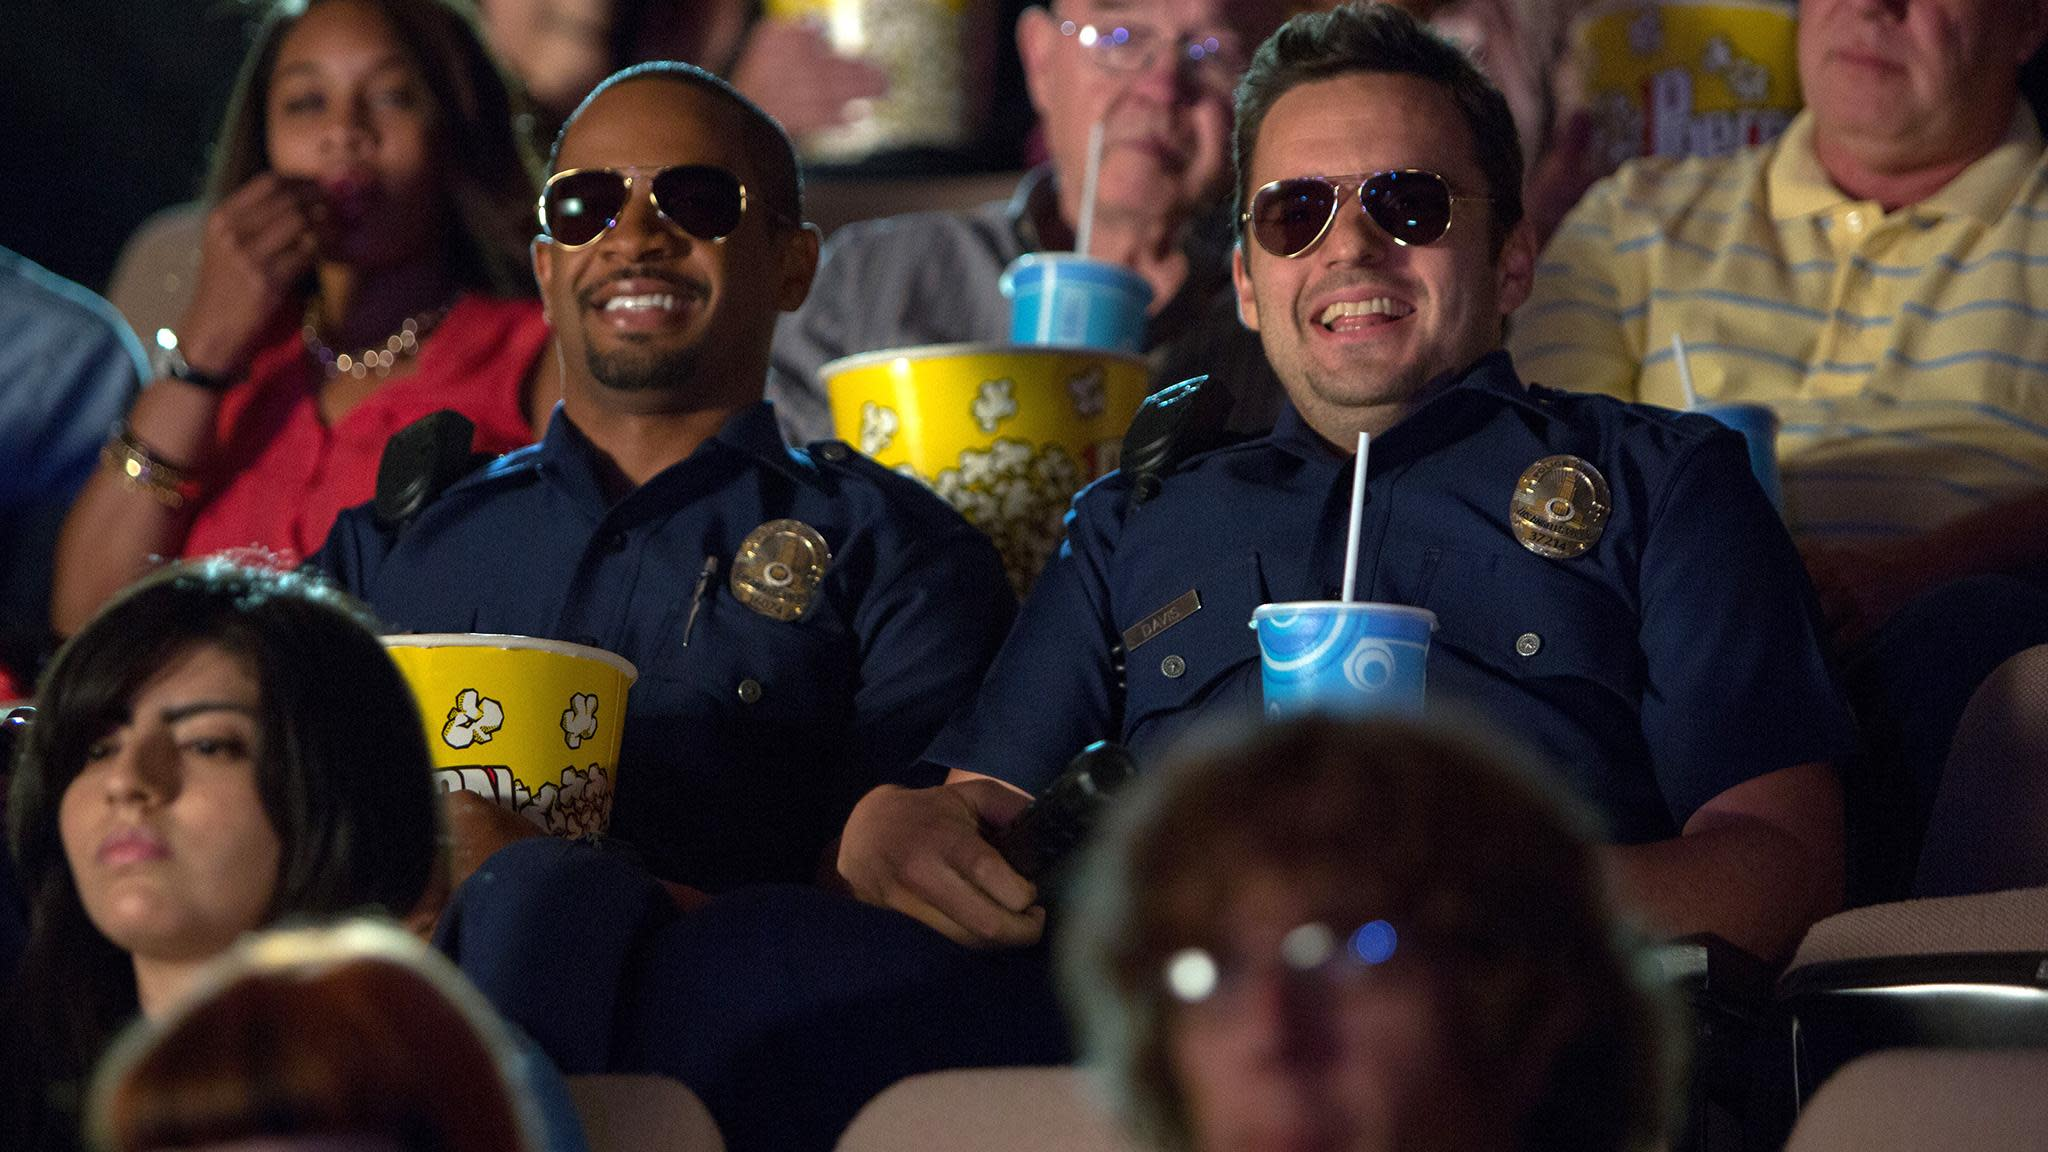 Damon Wayans Jr. and Jake Johnson in 'Let's Be Cops'